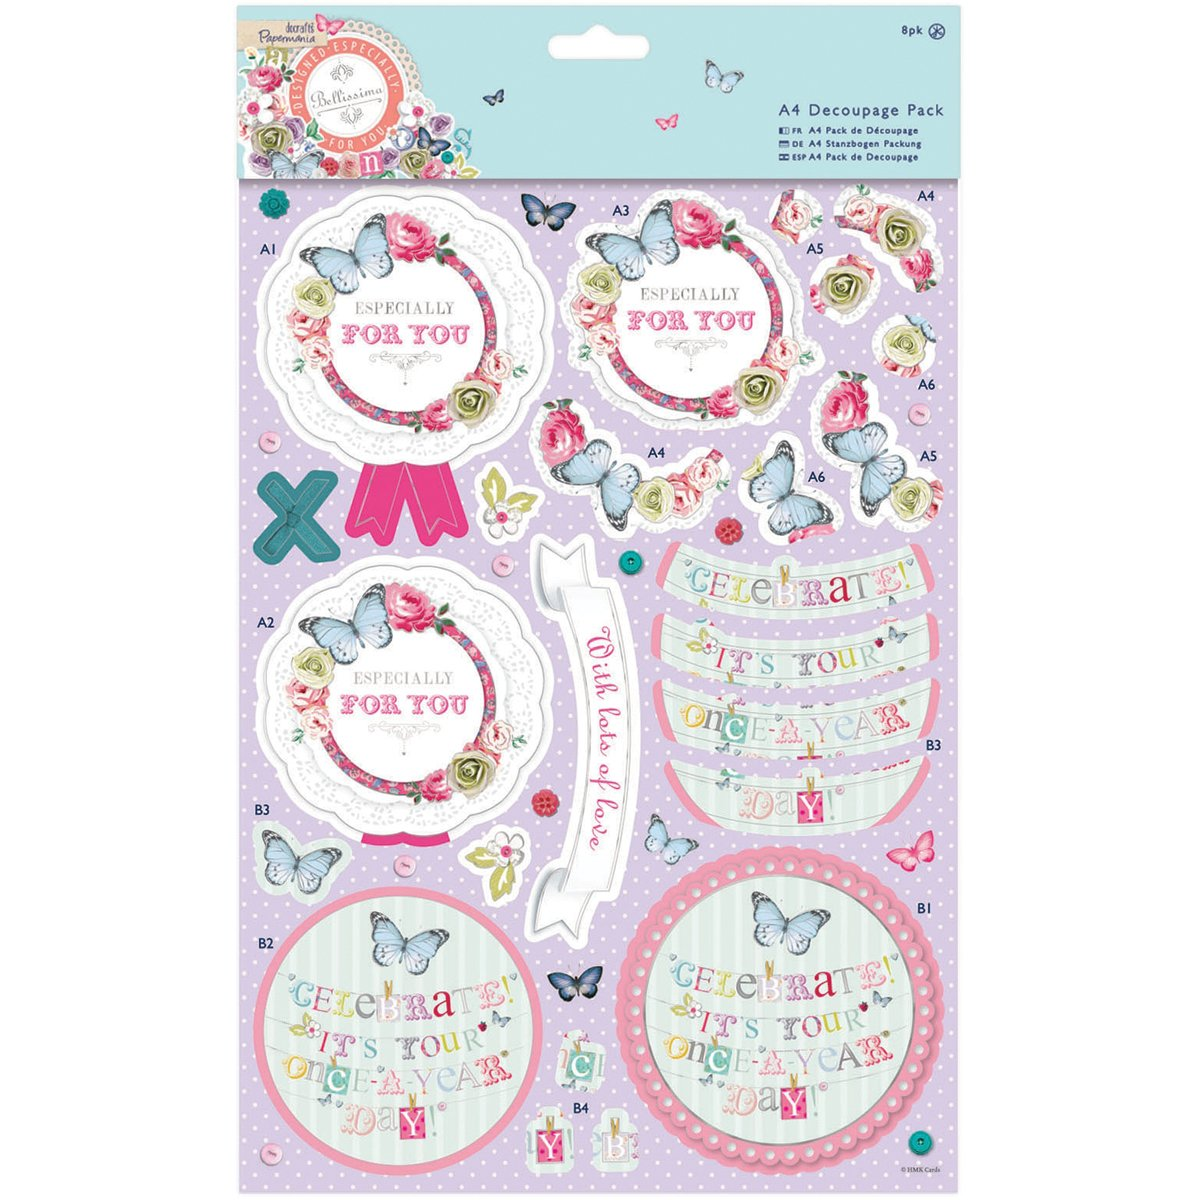 docrafts Papermania Bellissima Foiled A4 Decoupage Pack, Mum